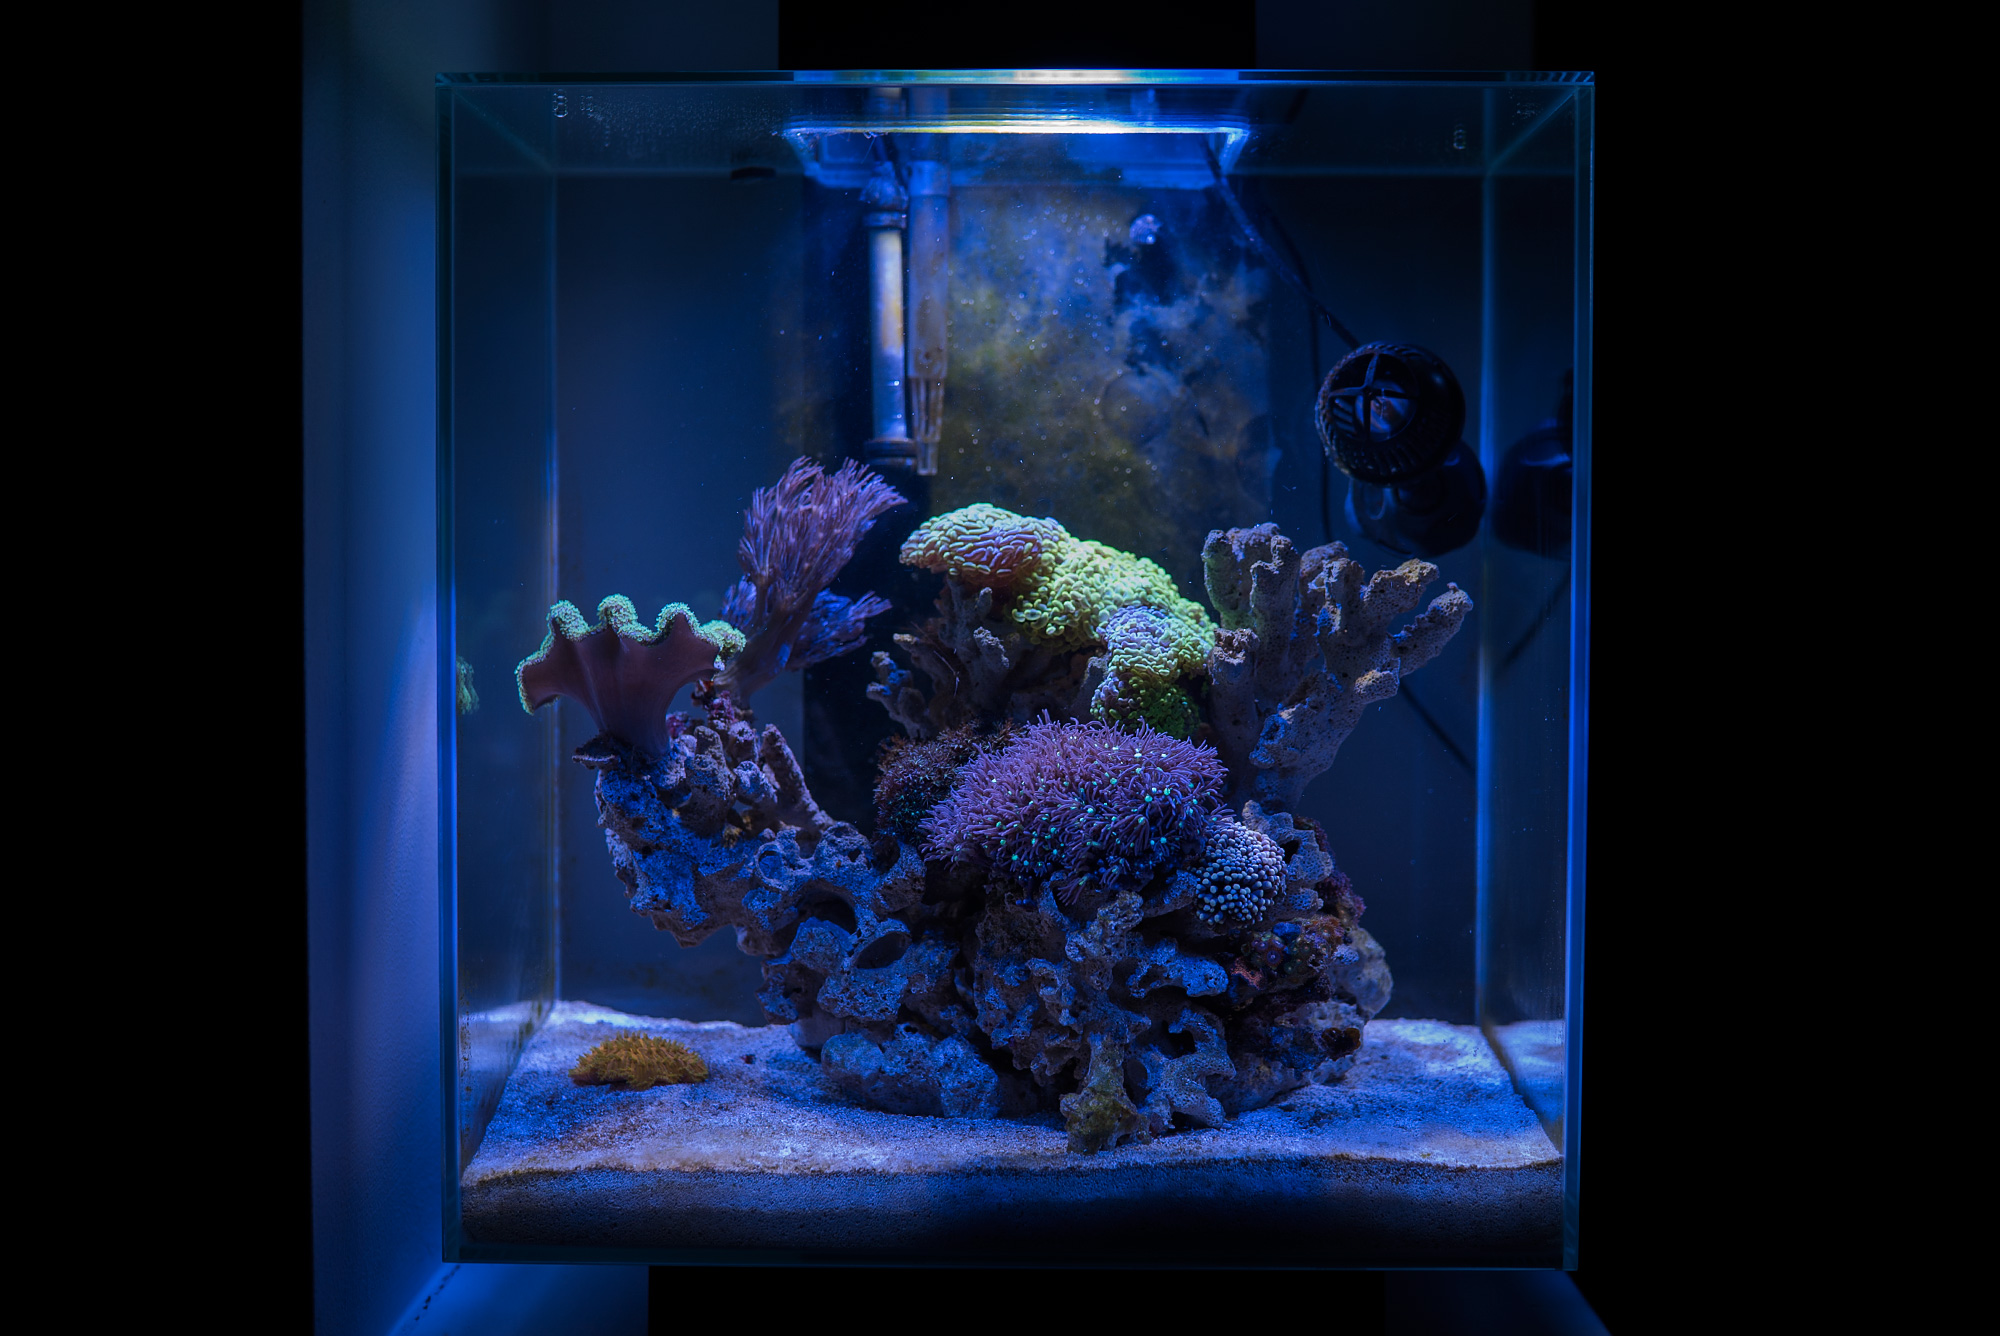 justin fox 39 s fluval edge 2 new video page 15 page 5 members aquariums nano forums. Black Bedroom Furniture Sets. Home Design Ideas